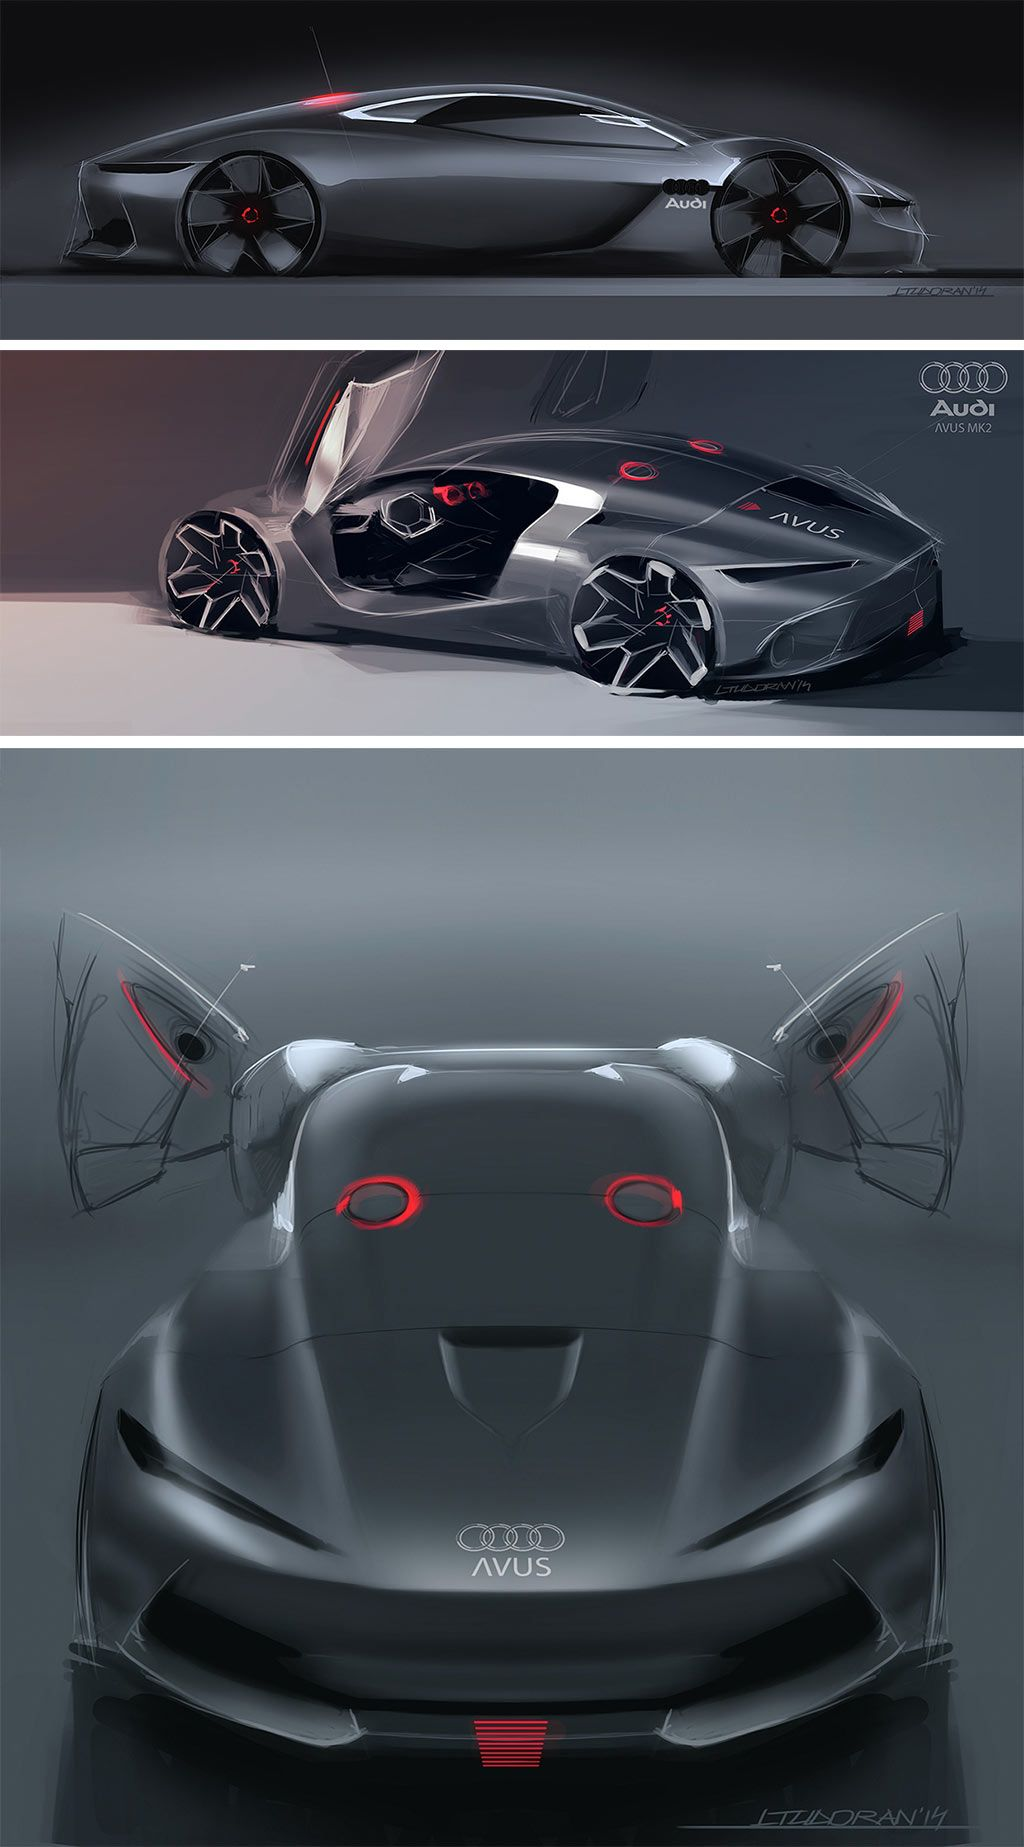 The Dodge Viper VX   sick car concepts   Pinterest   Sketches  Cars     Audi Avus MKII Concept Design Sketches by Liviu Tudoran   Car Body Design